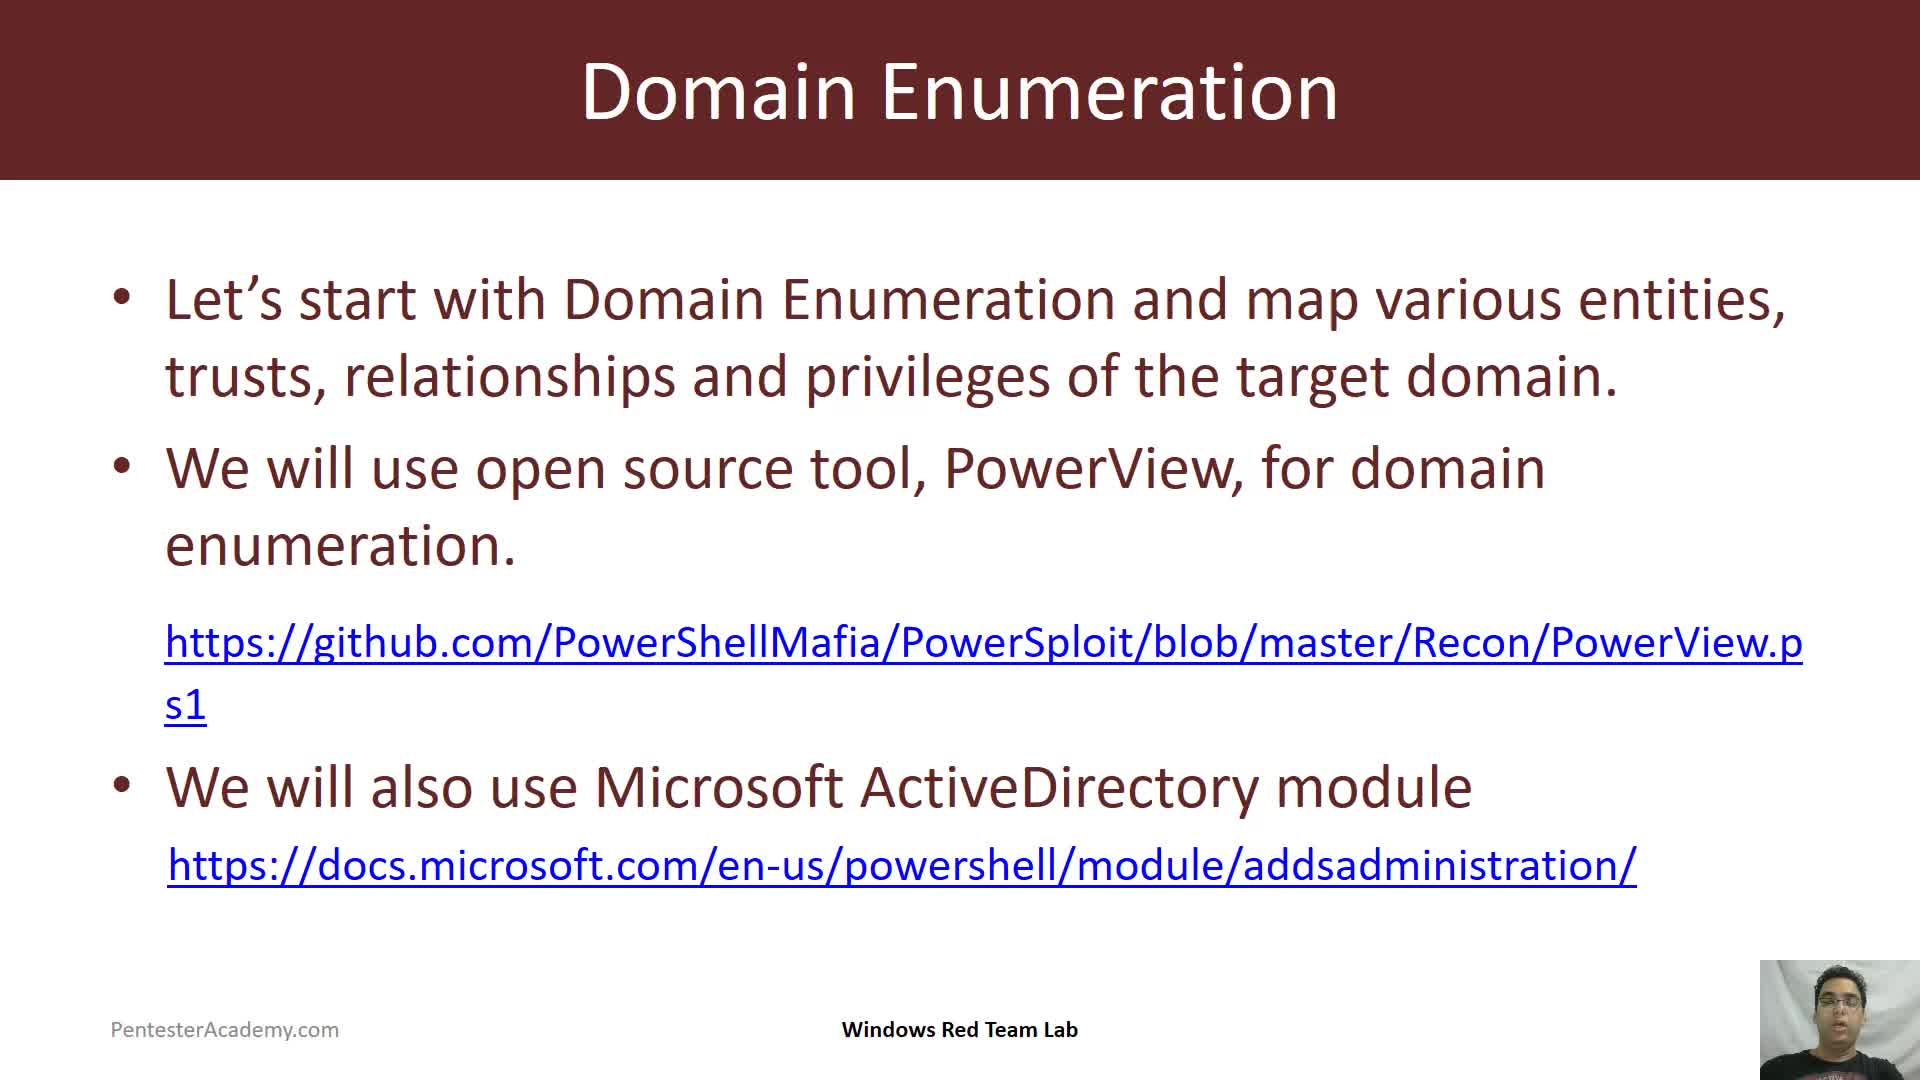 Domain Enumeration Techniques | Windows Red Team Lab